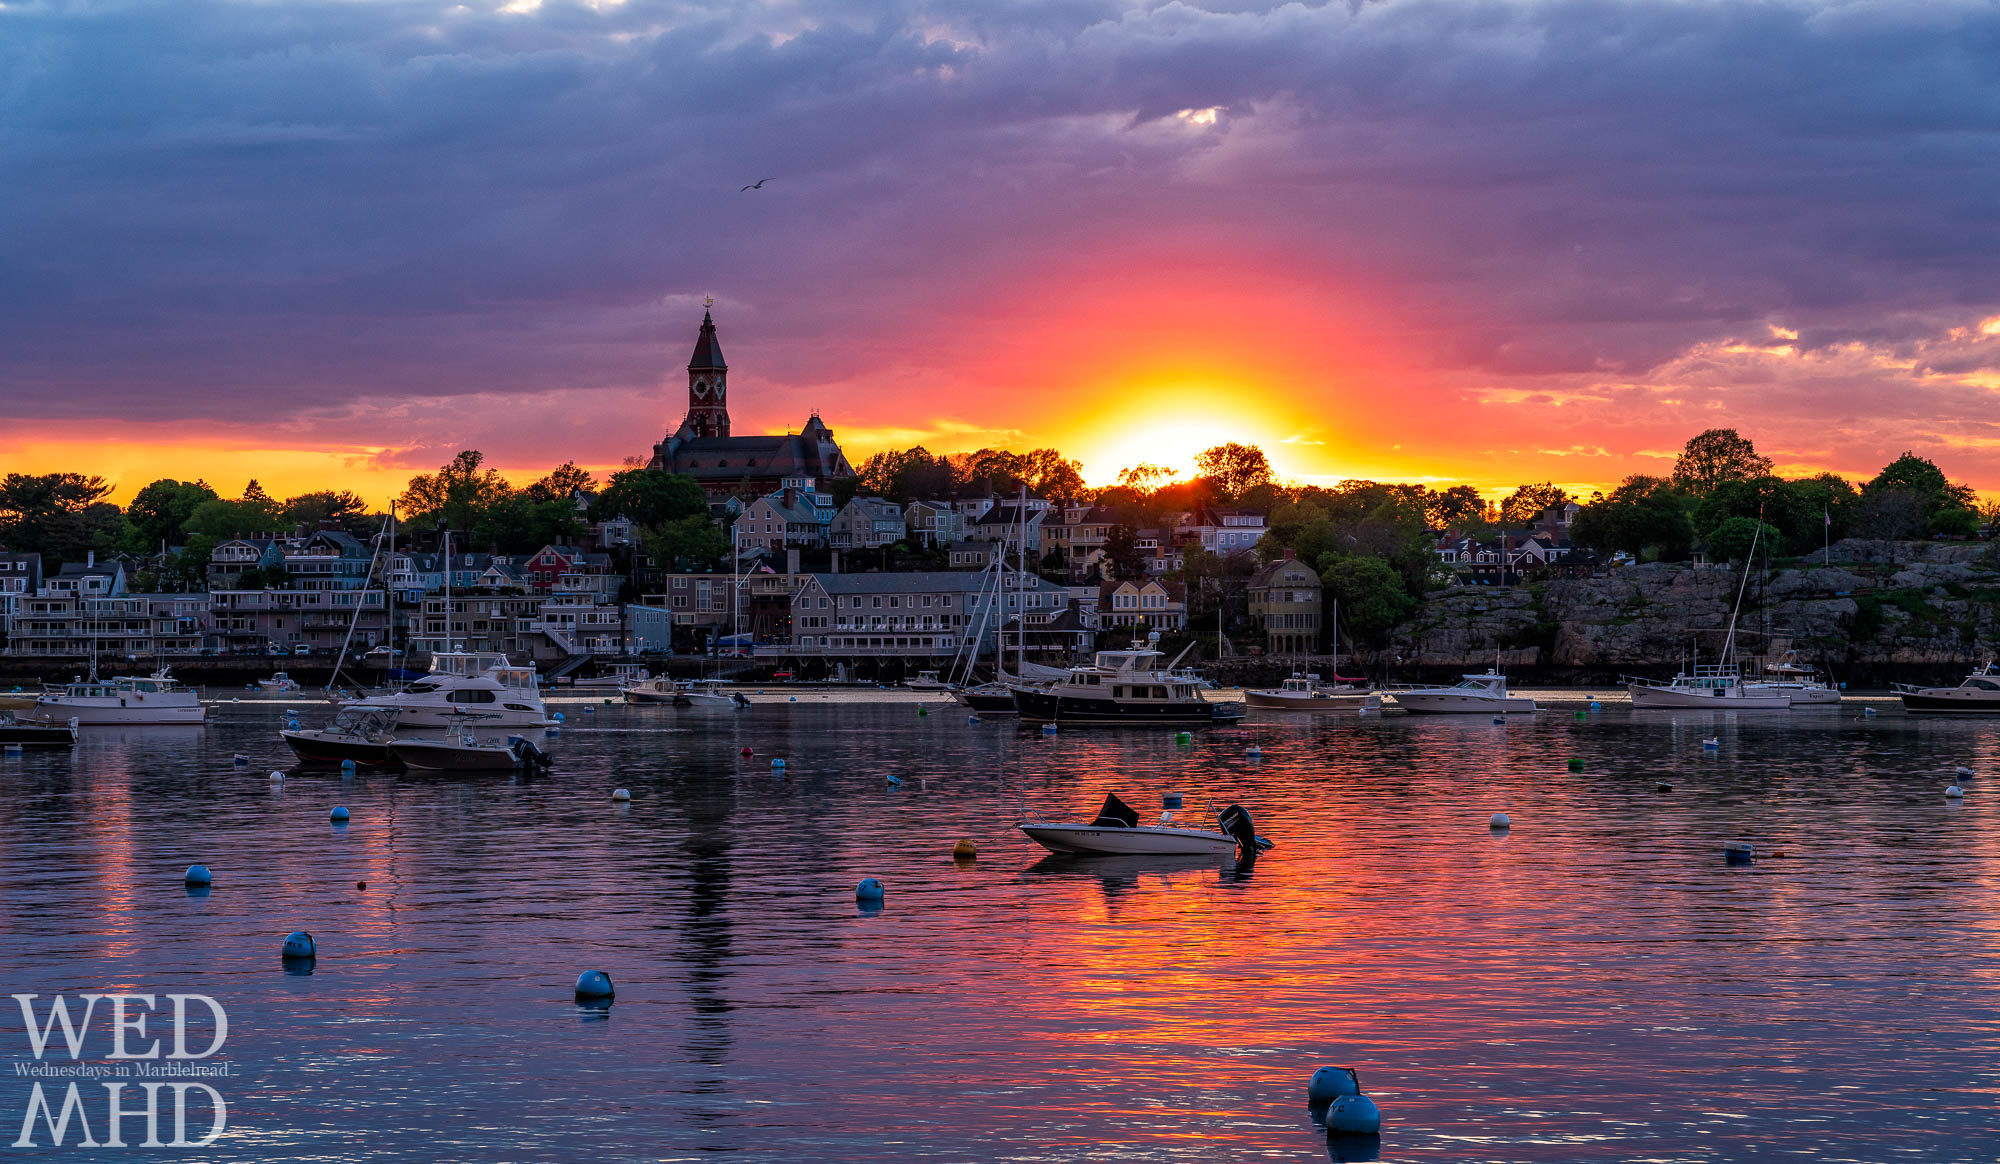 Sunset light erupts beside Abbot Hall on a mid-May evening with few boats in the harbor and a seagull flying overhead